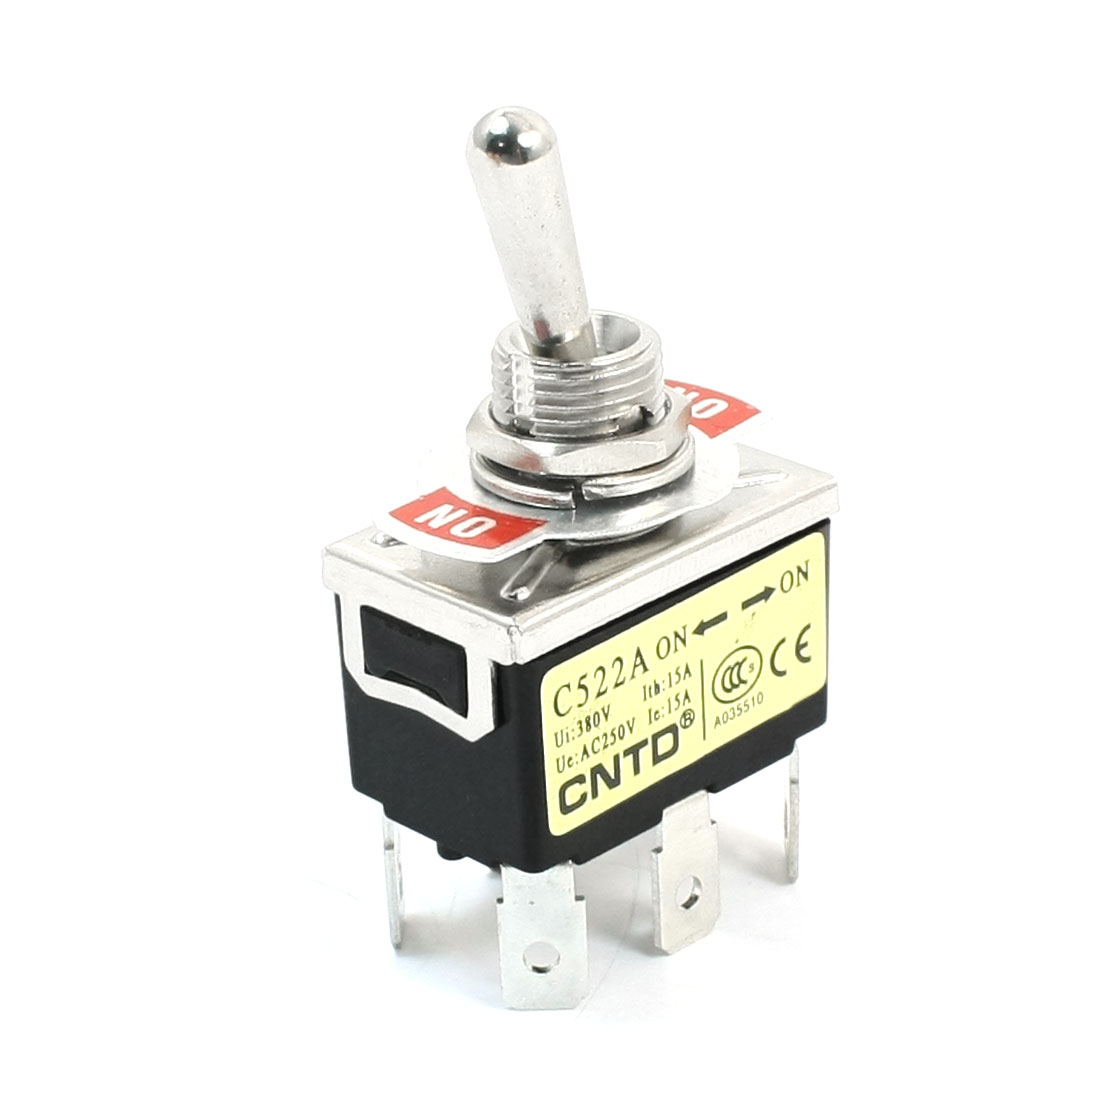 AC250V 15A DPDT 2 Positions ON/ON Latching Toggle Switch C522A